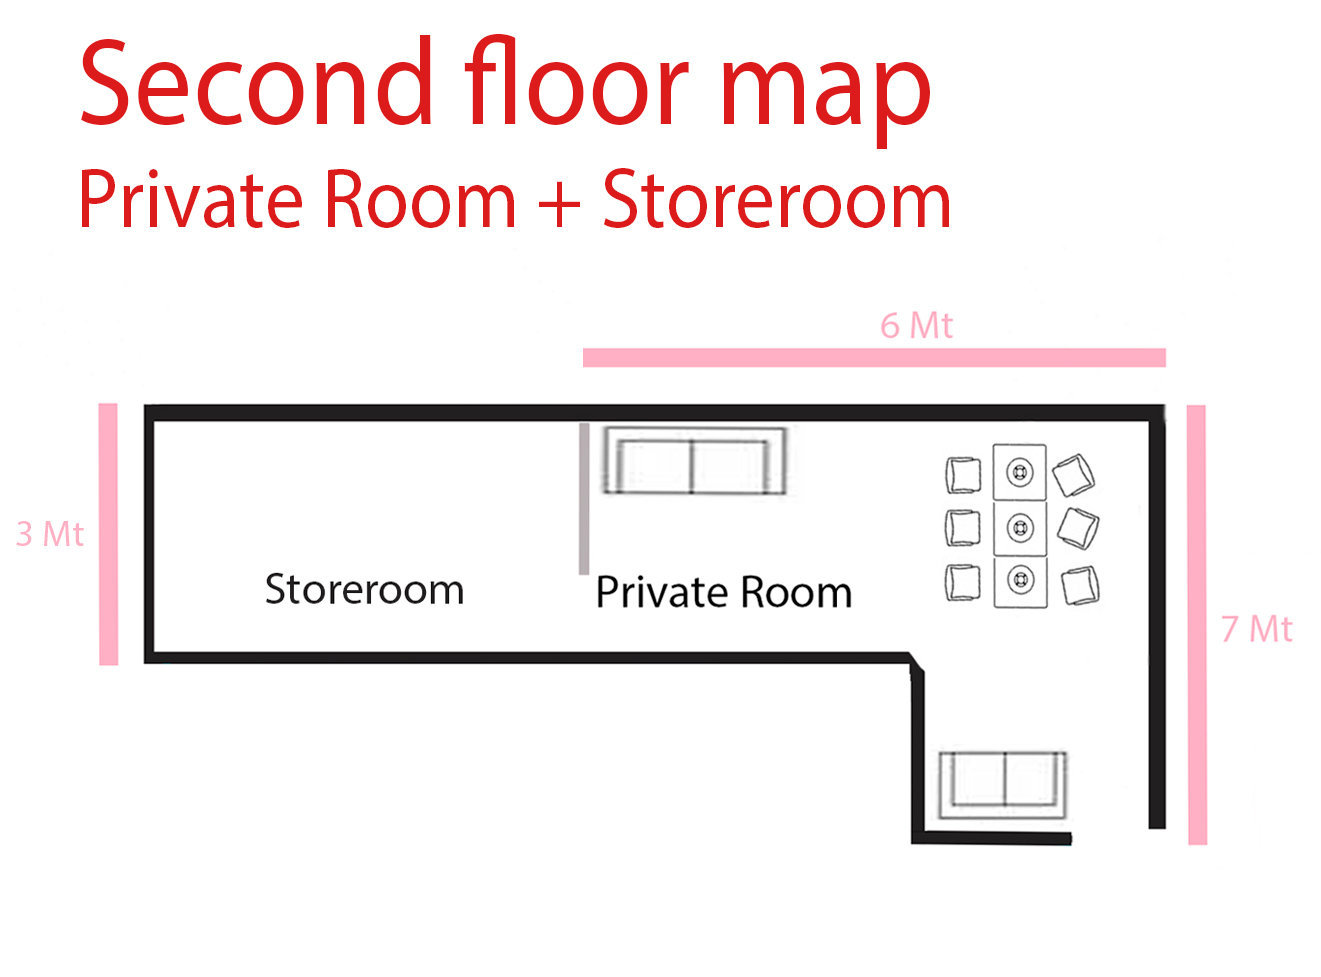 Second floor map.jpg